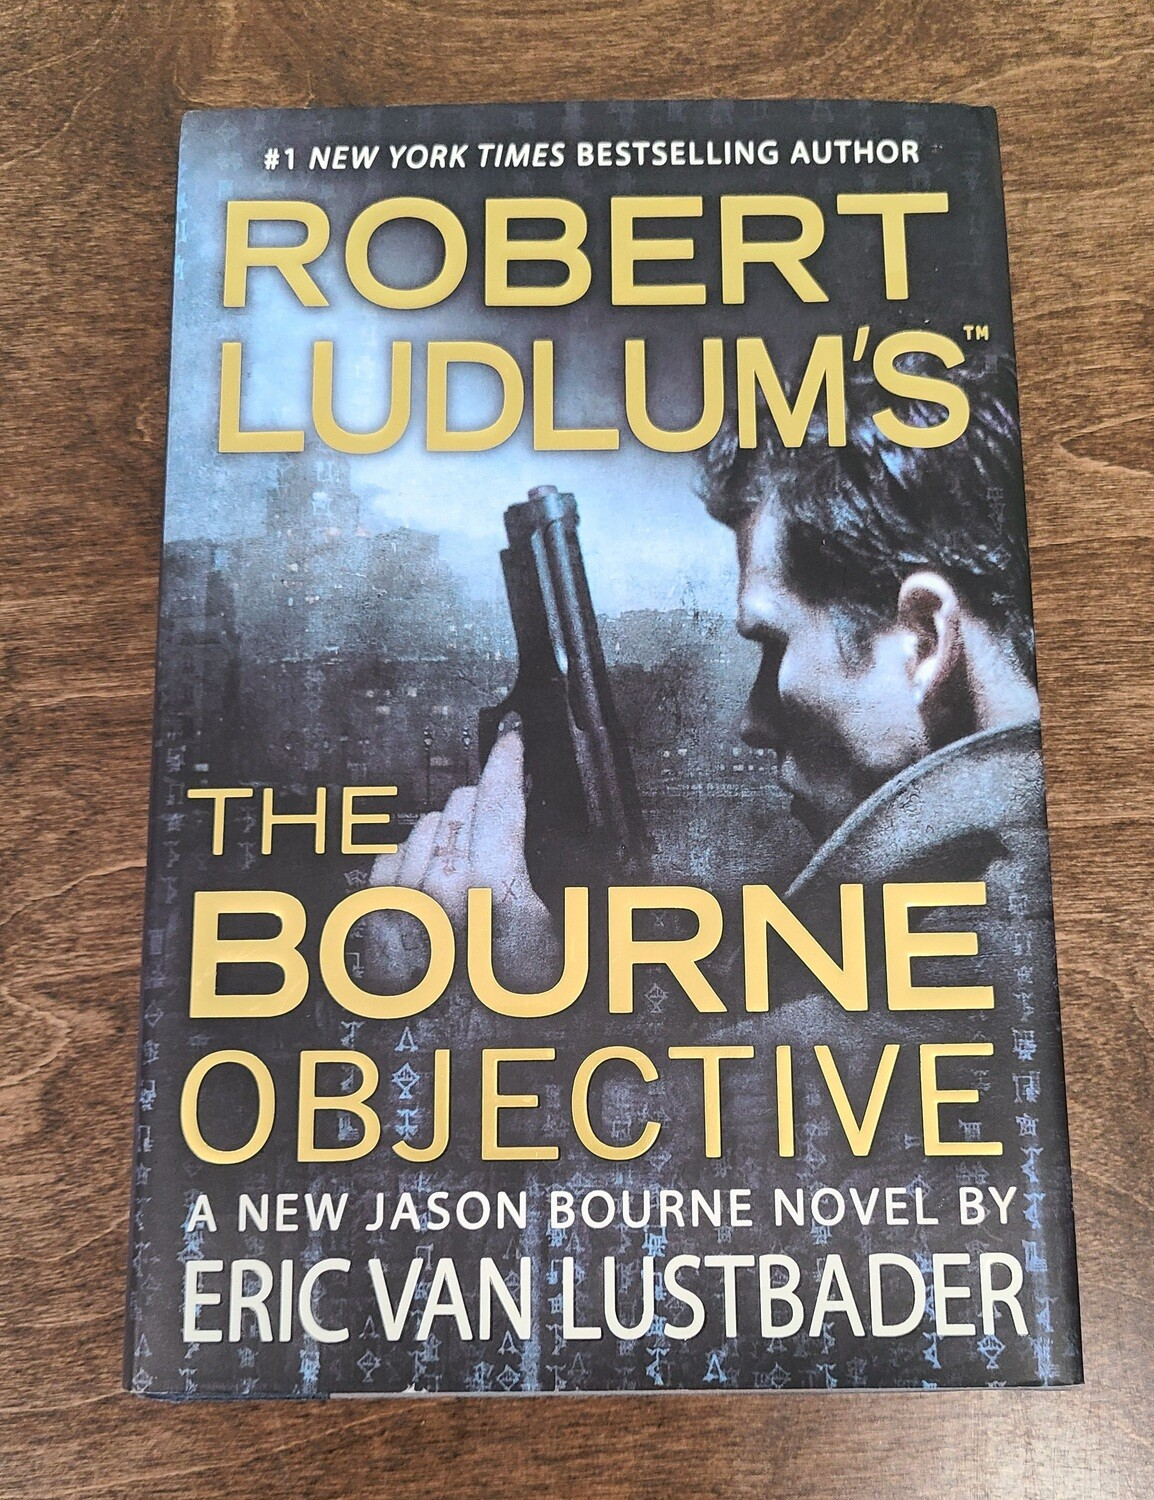 Robert Ludlum's The Bourne Objective by Eric Van Lustbader - Hardback